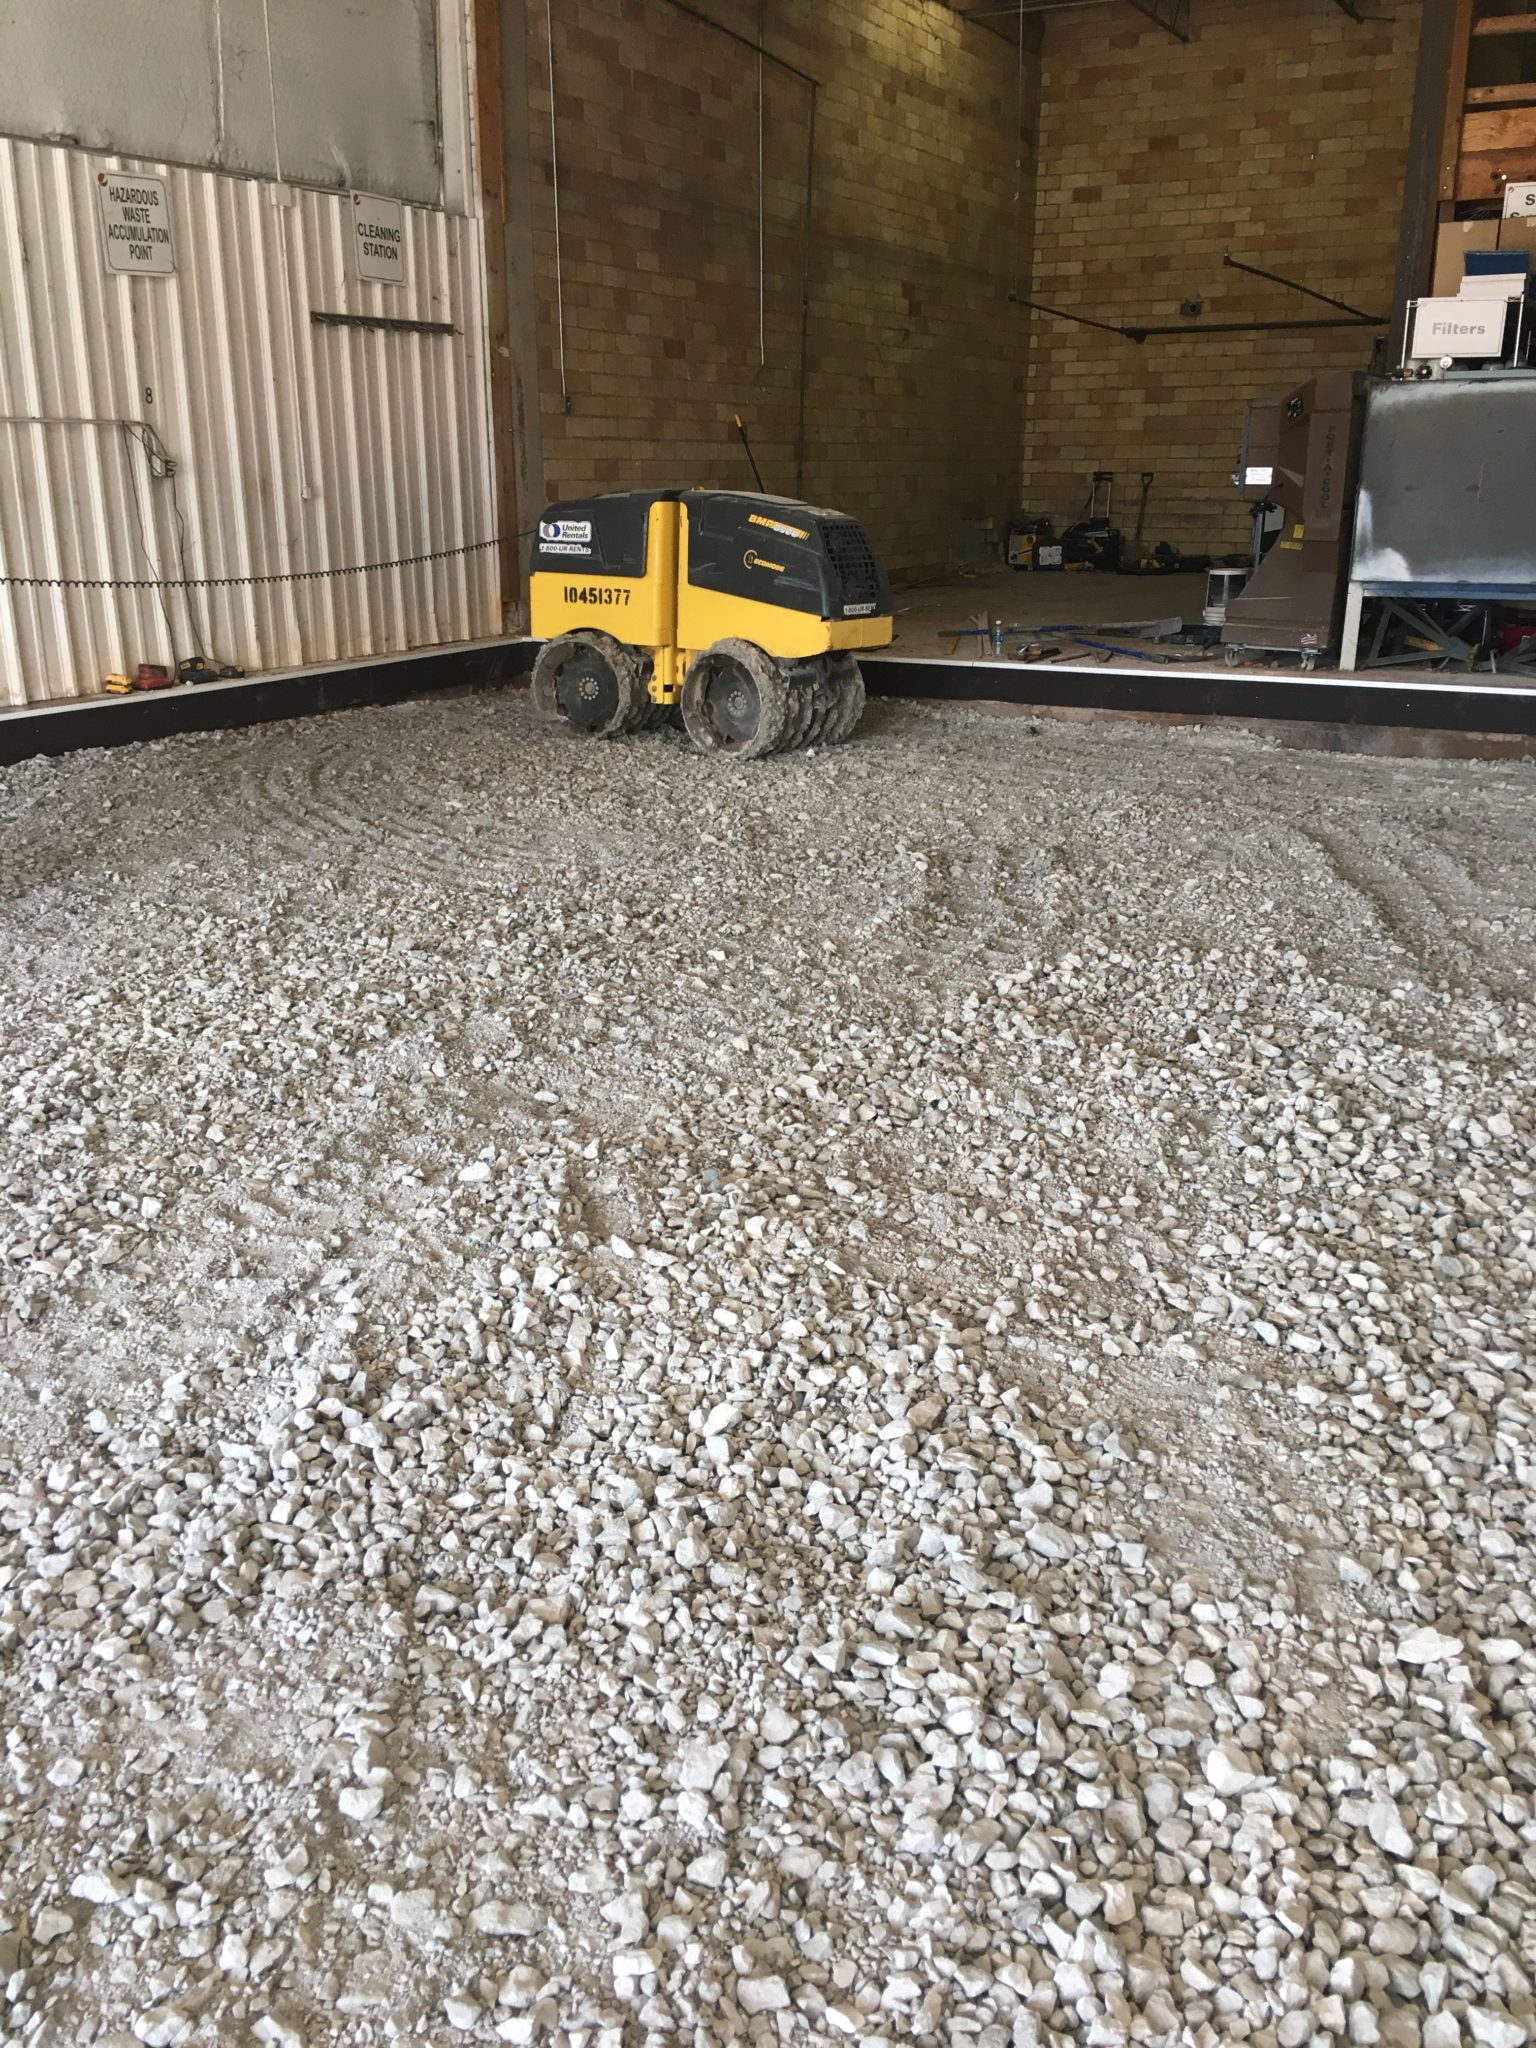 Concrete Backfill Compacting